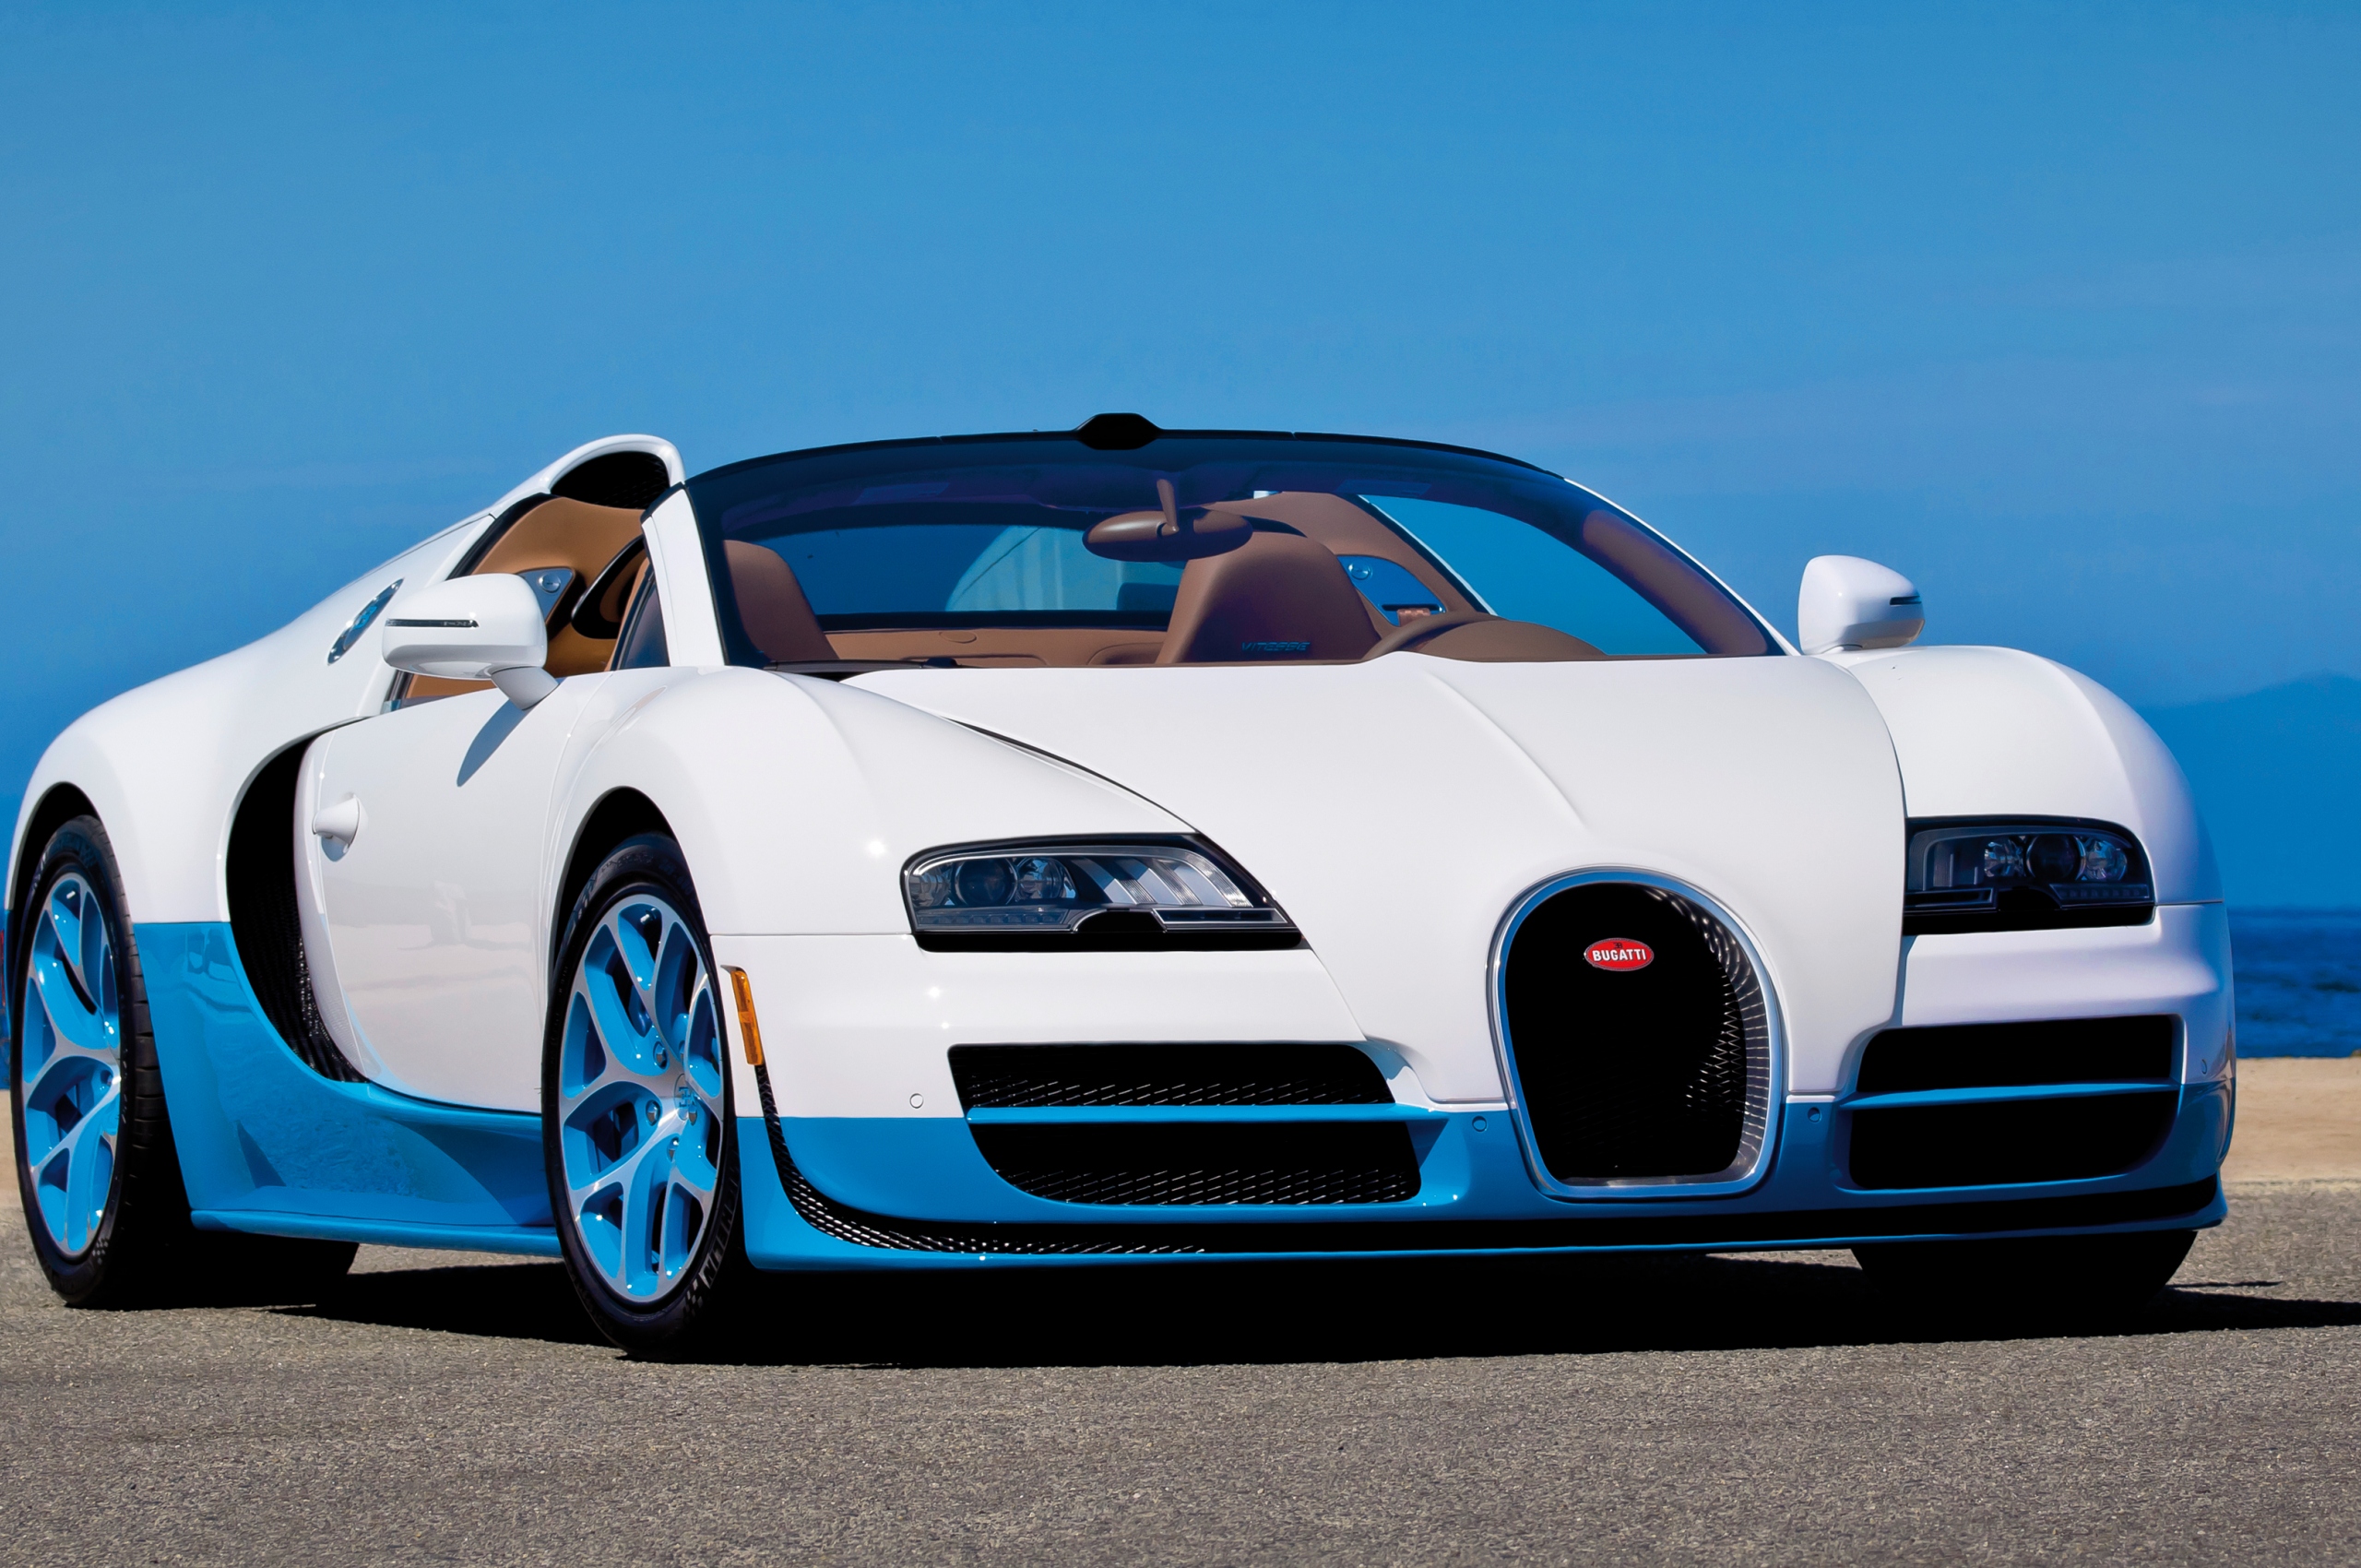 Free Download Bugatti Grand Sport Vitesse 4k Uhd Wallpaper Wallpaperevo Wallpapers 3840x2160 For Your Desktop Mobile Tablet Explore 48 Bugatti Pictures And Wallpapers Bugatti Pictures And Wallpapers Bugatti Wallpapers